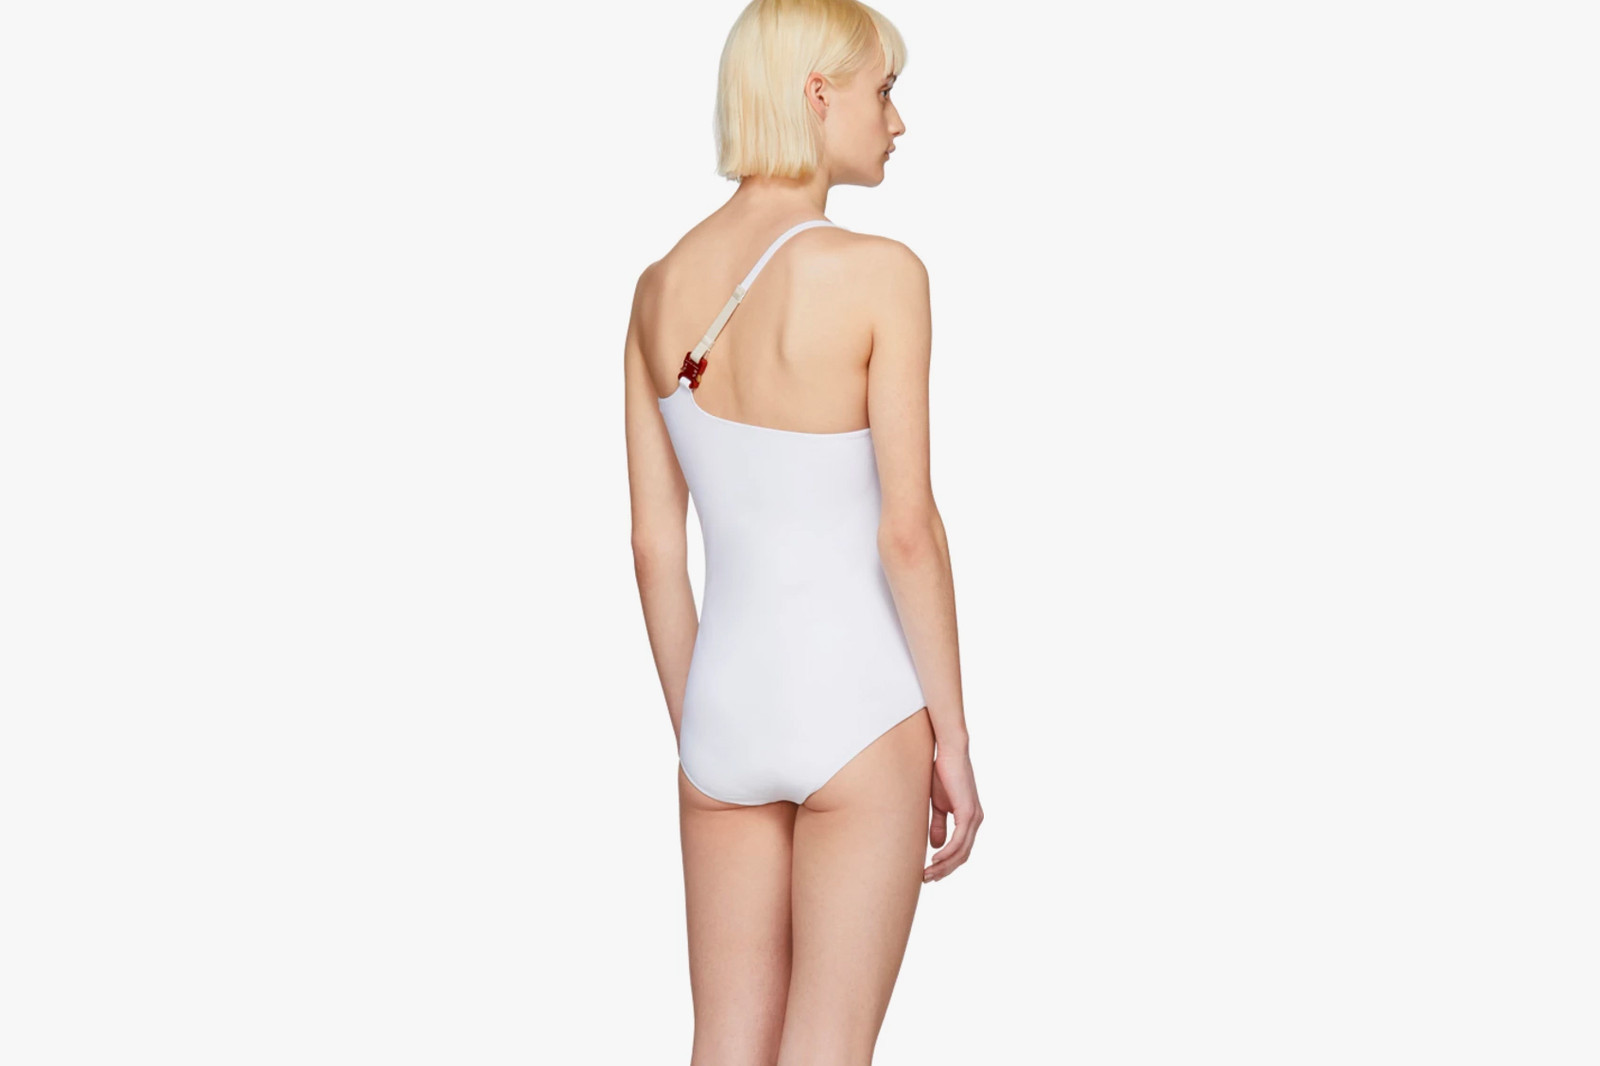 Best Swimwear Swimsuits Every Personality Body Type 2018 Off-White Vetements Gucci Emily Ratajkowski Inamorata Lazy Oaf Huza G Nike Swim Stussy Women Tommy Hilfiger Alyx